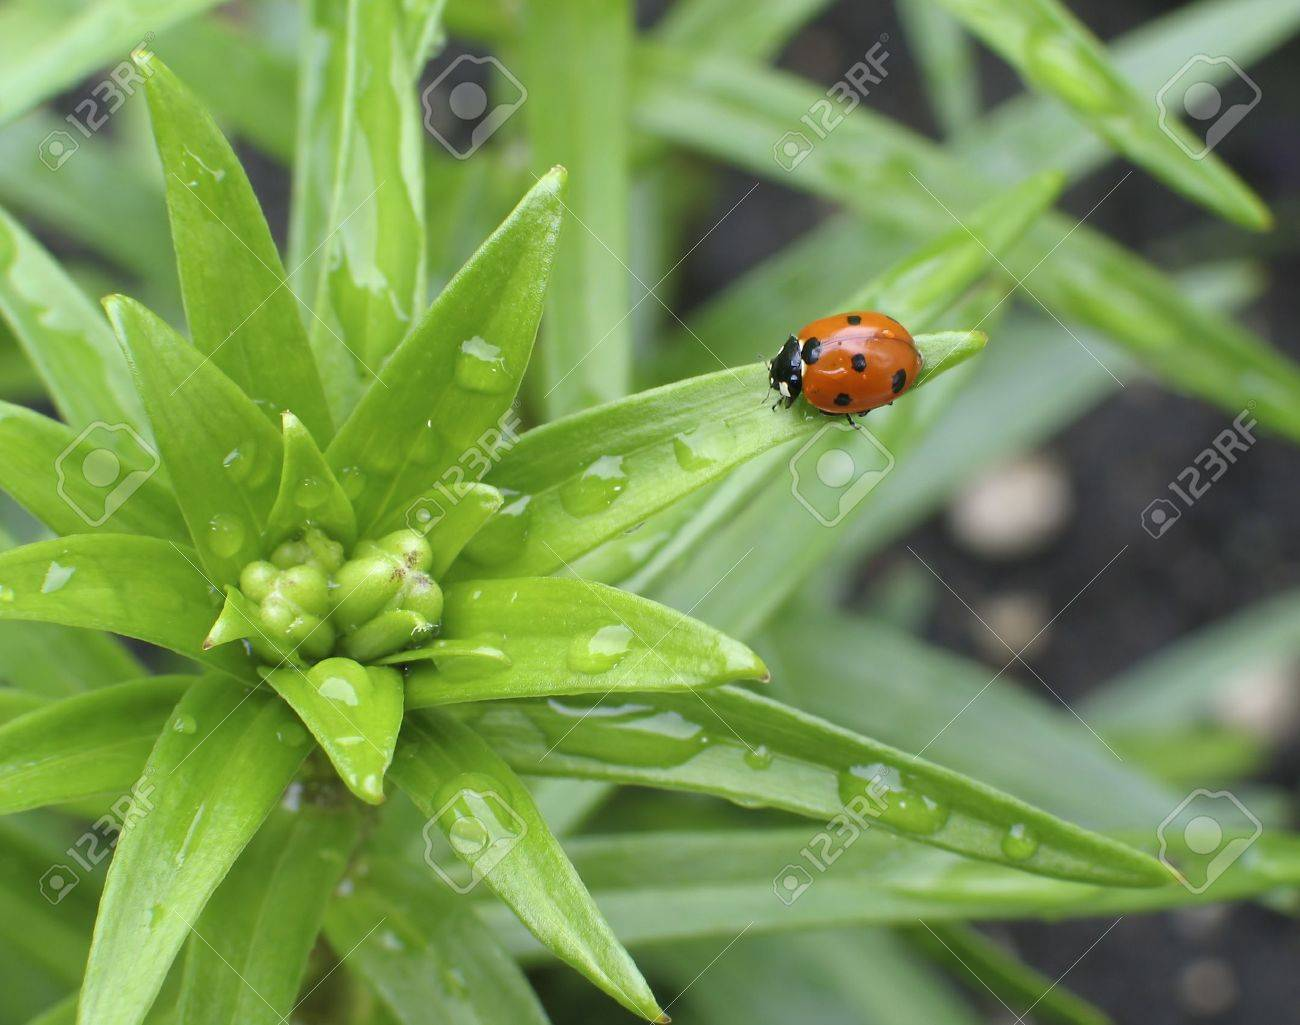 Ladybug on the leaf of a young lily plant in Spring. Stock Photo - 417637